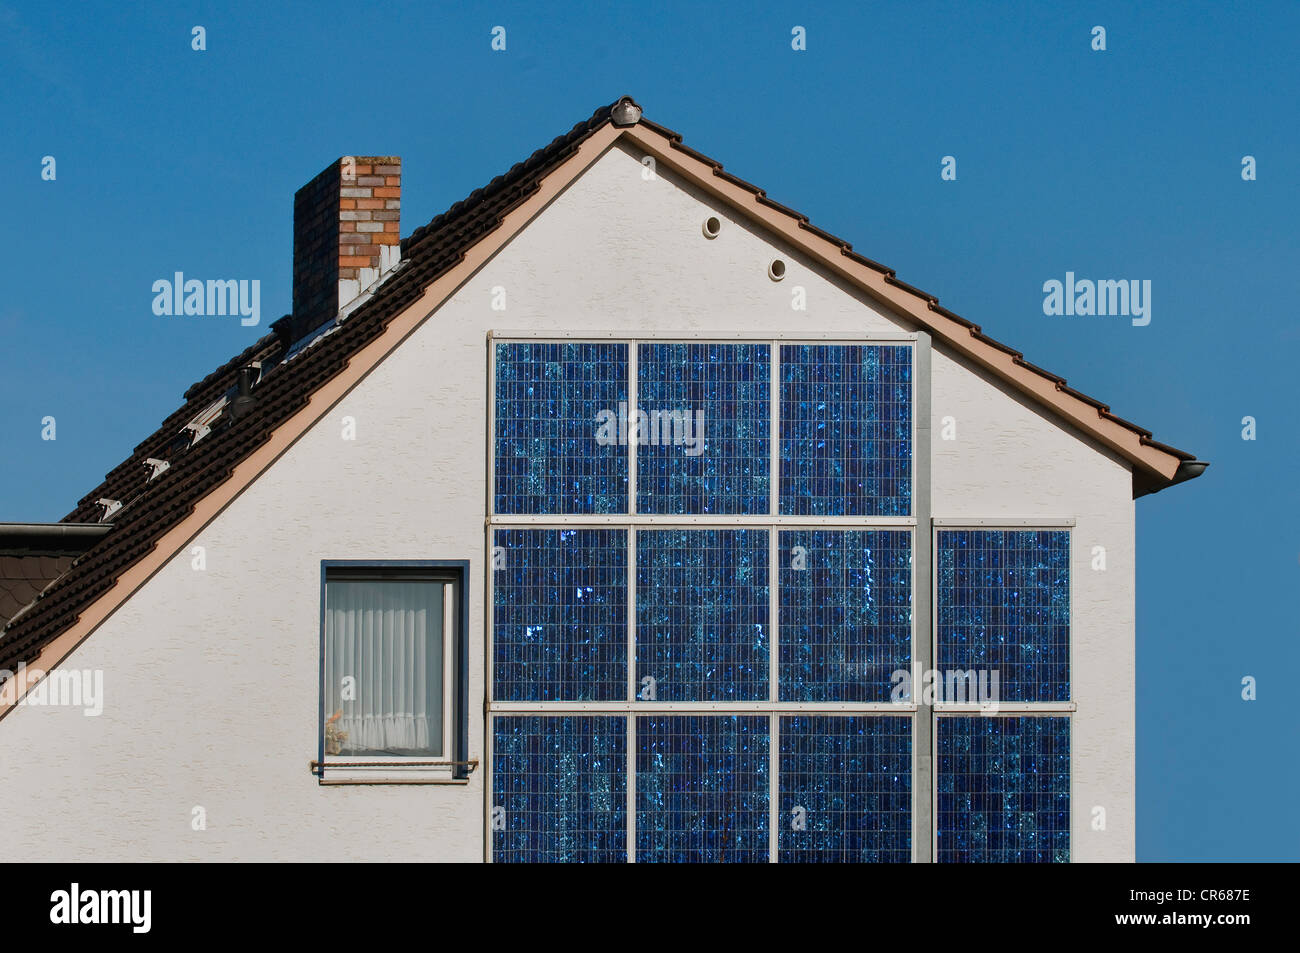 Modernised single-family home with solar panels on the southern wall, energy turnaround, PublicGround - Stock Image